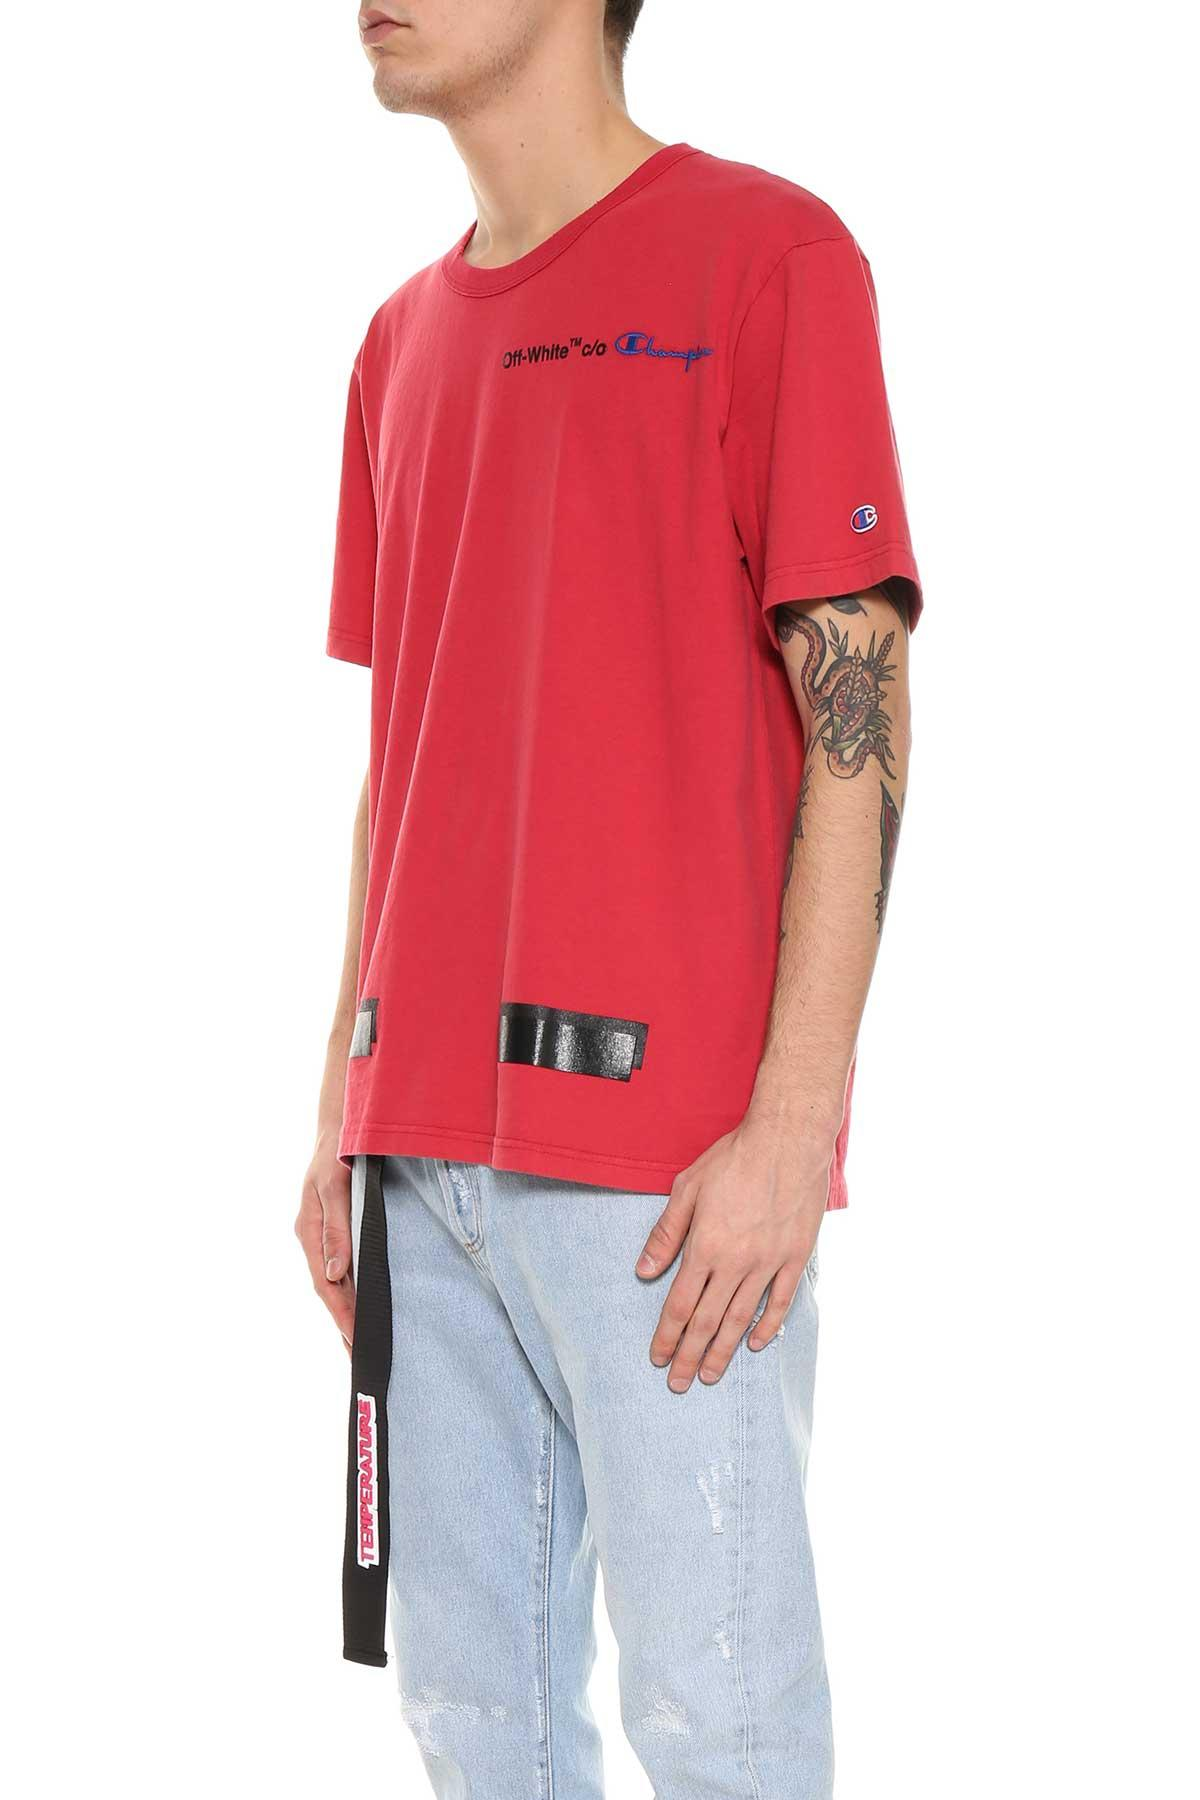 Off-white Red Champion Tee From  In Rosso